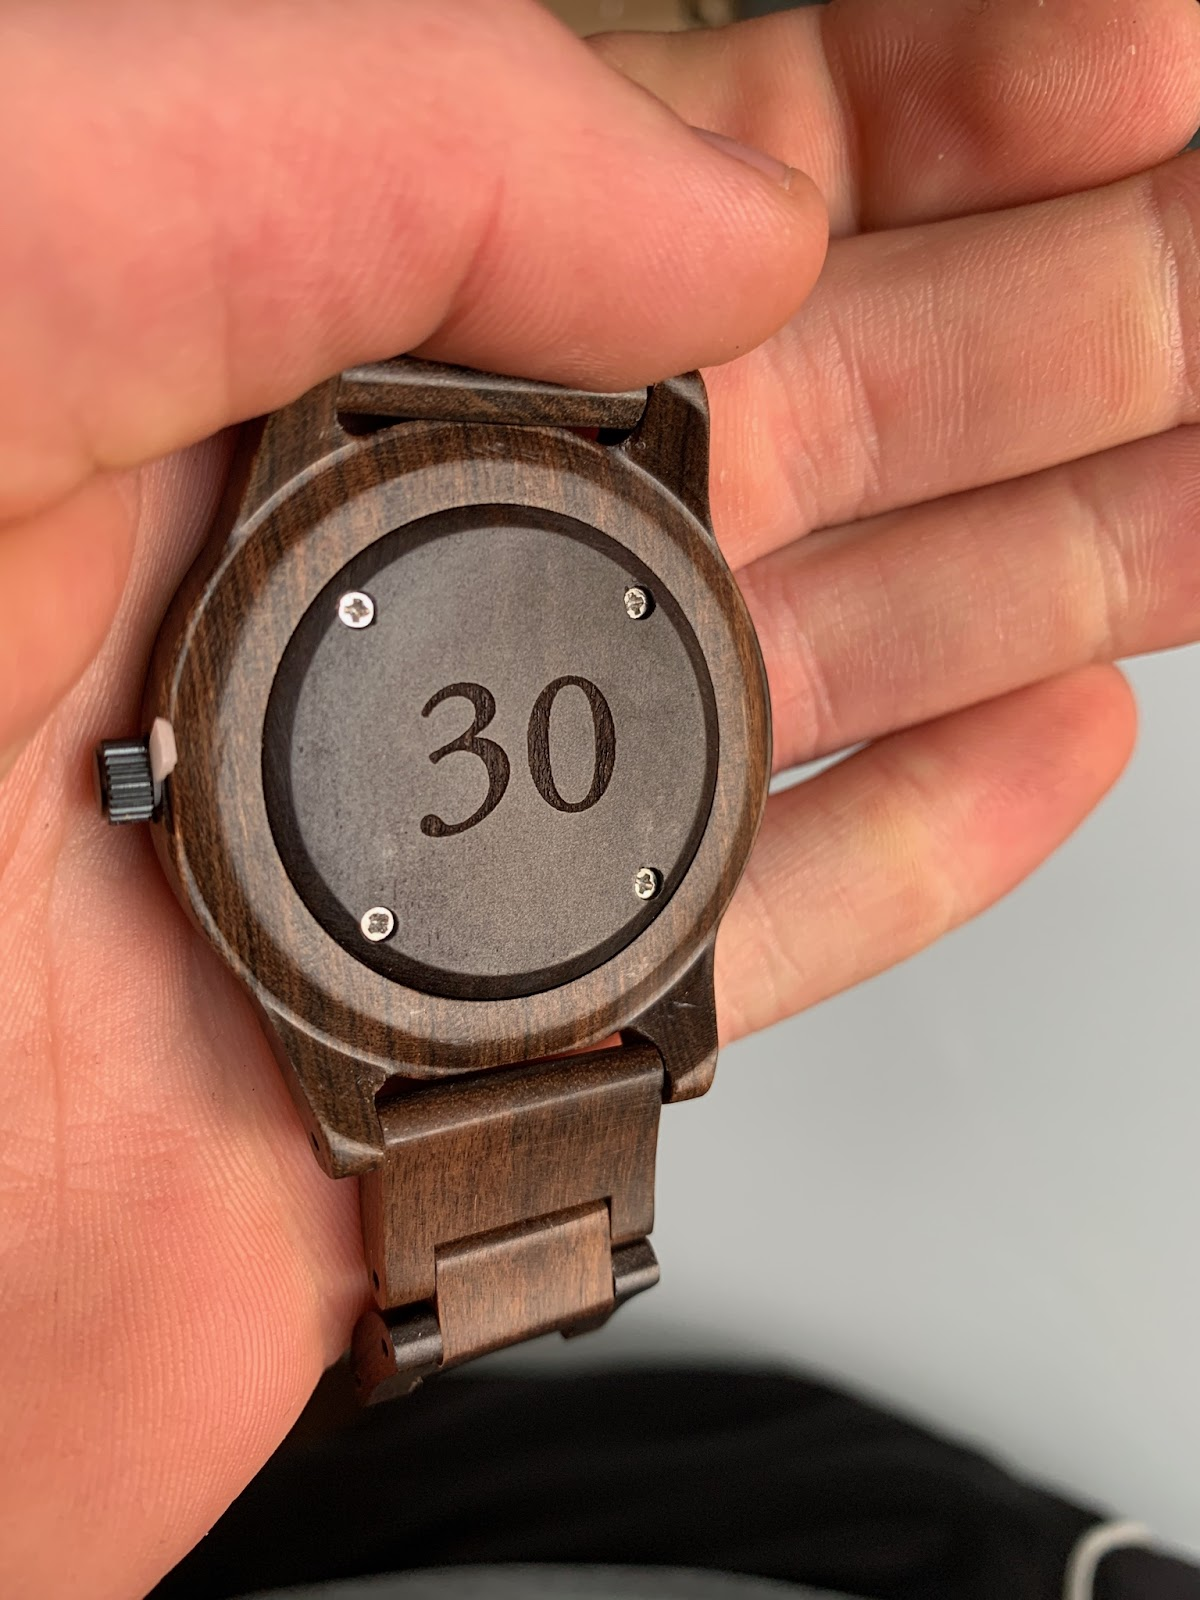 Wooden watch engraved with the number 30.